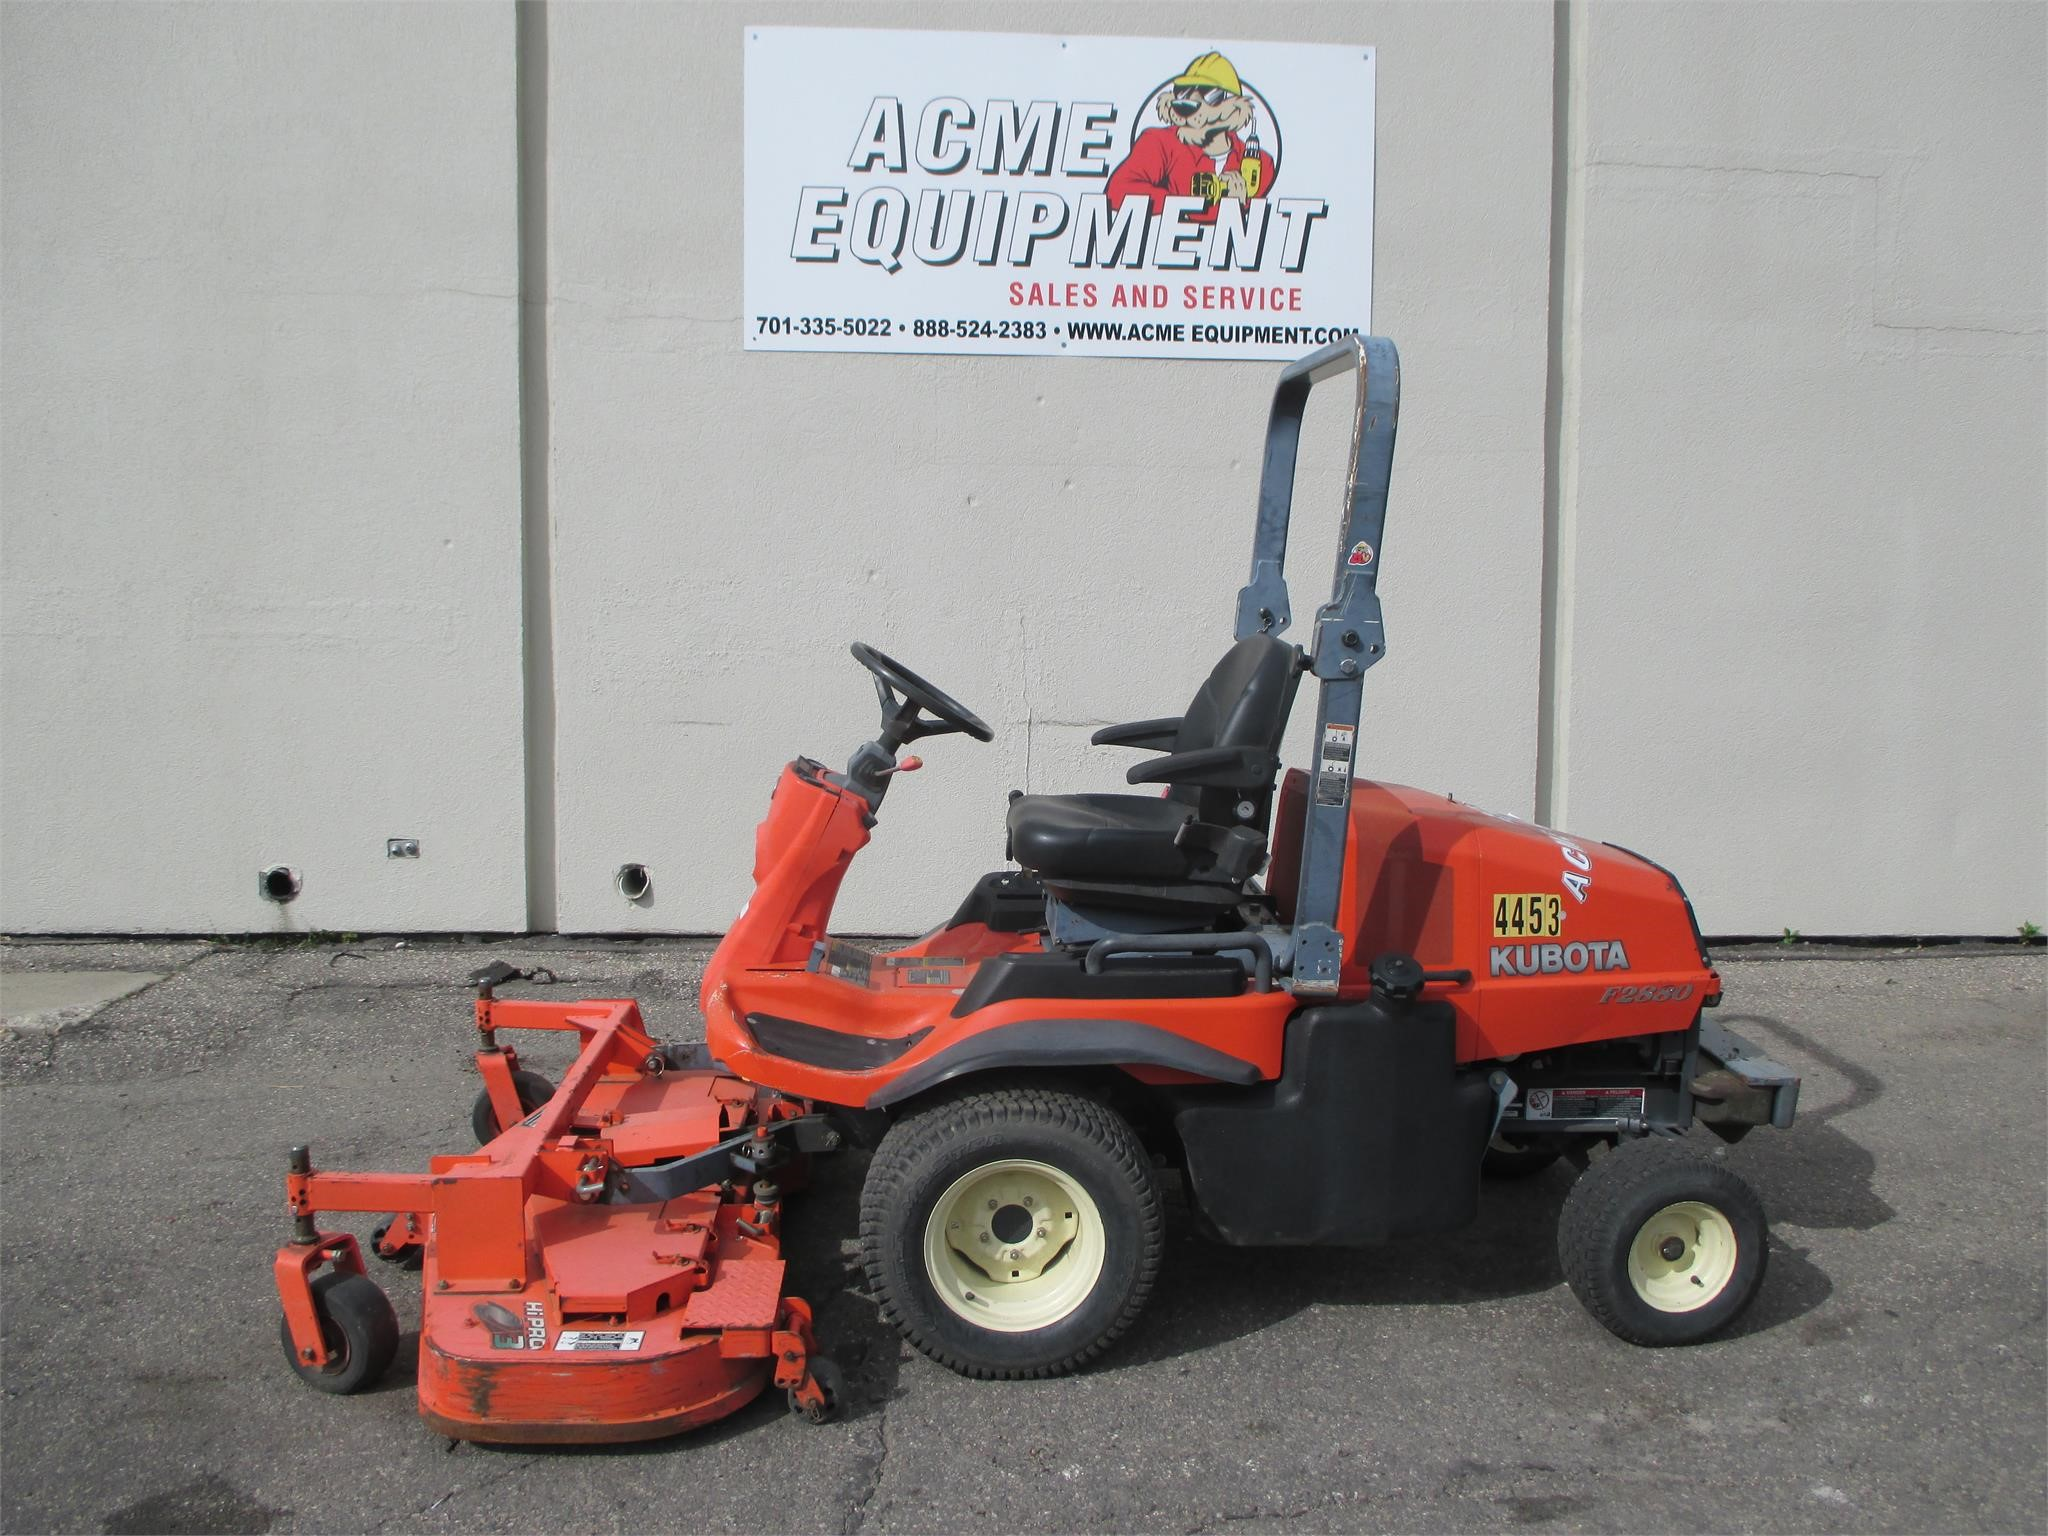 Used 2007 kubota f2880e other equipment riding lawn mowers ebay for Used lawn and garden equipment